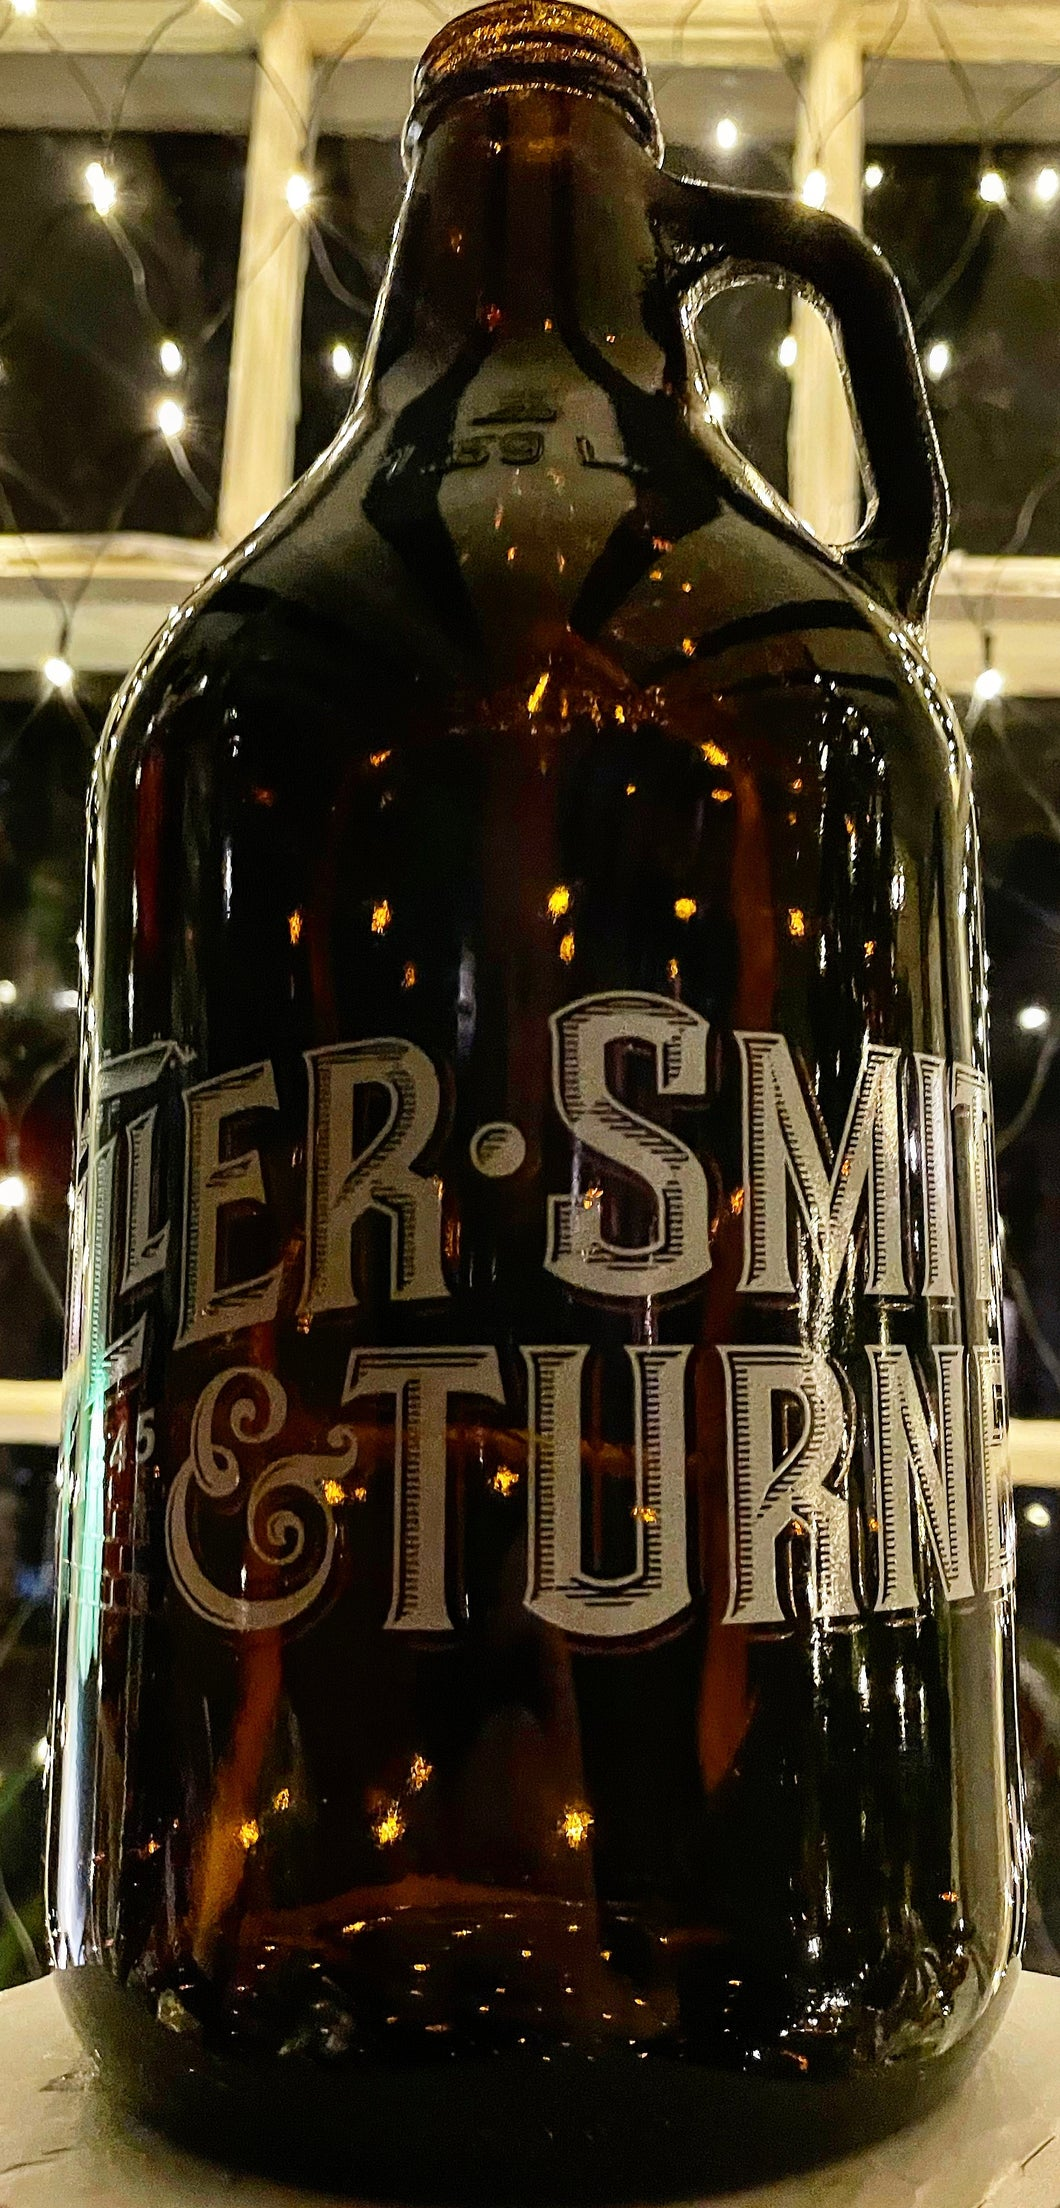 Exclusive Fuller Smith & Turner 1.89L Glass Growler Bottle